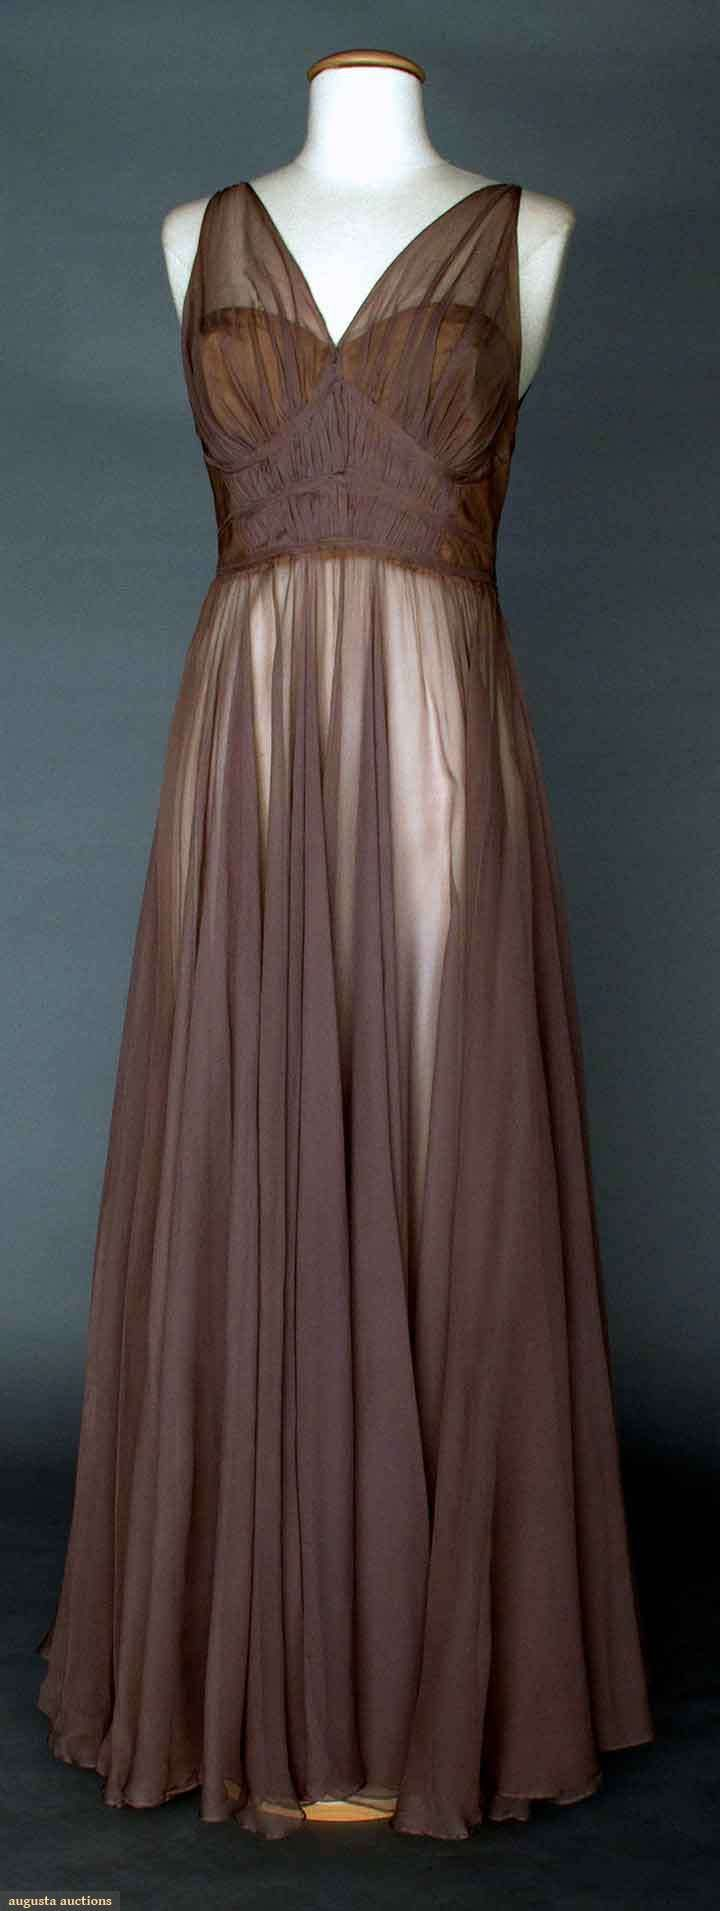 """VALENTINA MAUVE EVENING GOWN, 1930s Unlabeled & bought at Valentina Schlee's personal estate sale # Christie's East, 1992: silk chiffon goddess gown, deep V-neckline F & B, sleeveless, above high waistline bodice fabric's gathers held in place by 3 narrow bands, silk bodice lining, hand finished details, B 34"""", W 25.5"""", L 58"""""""